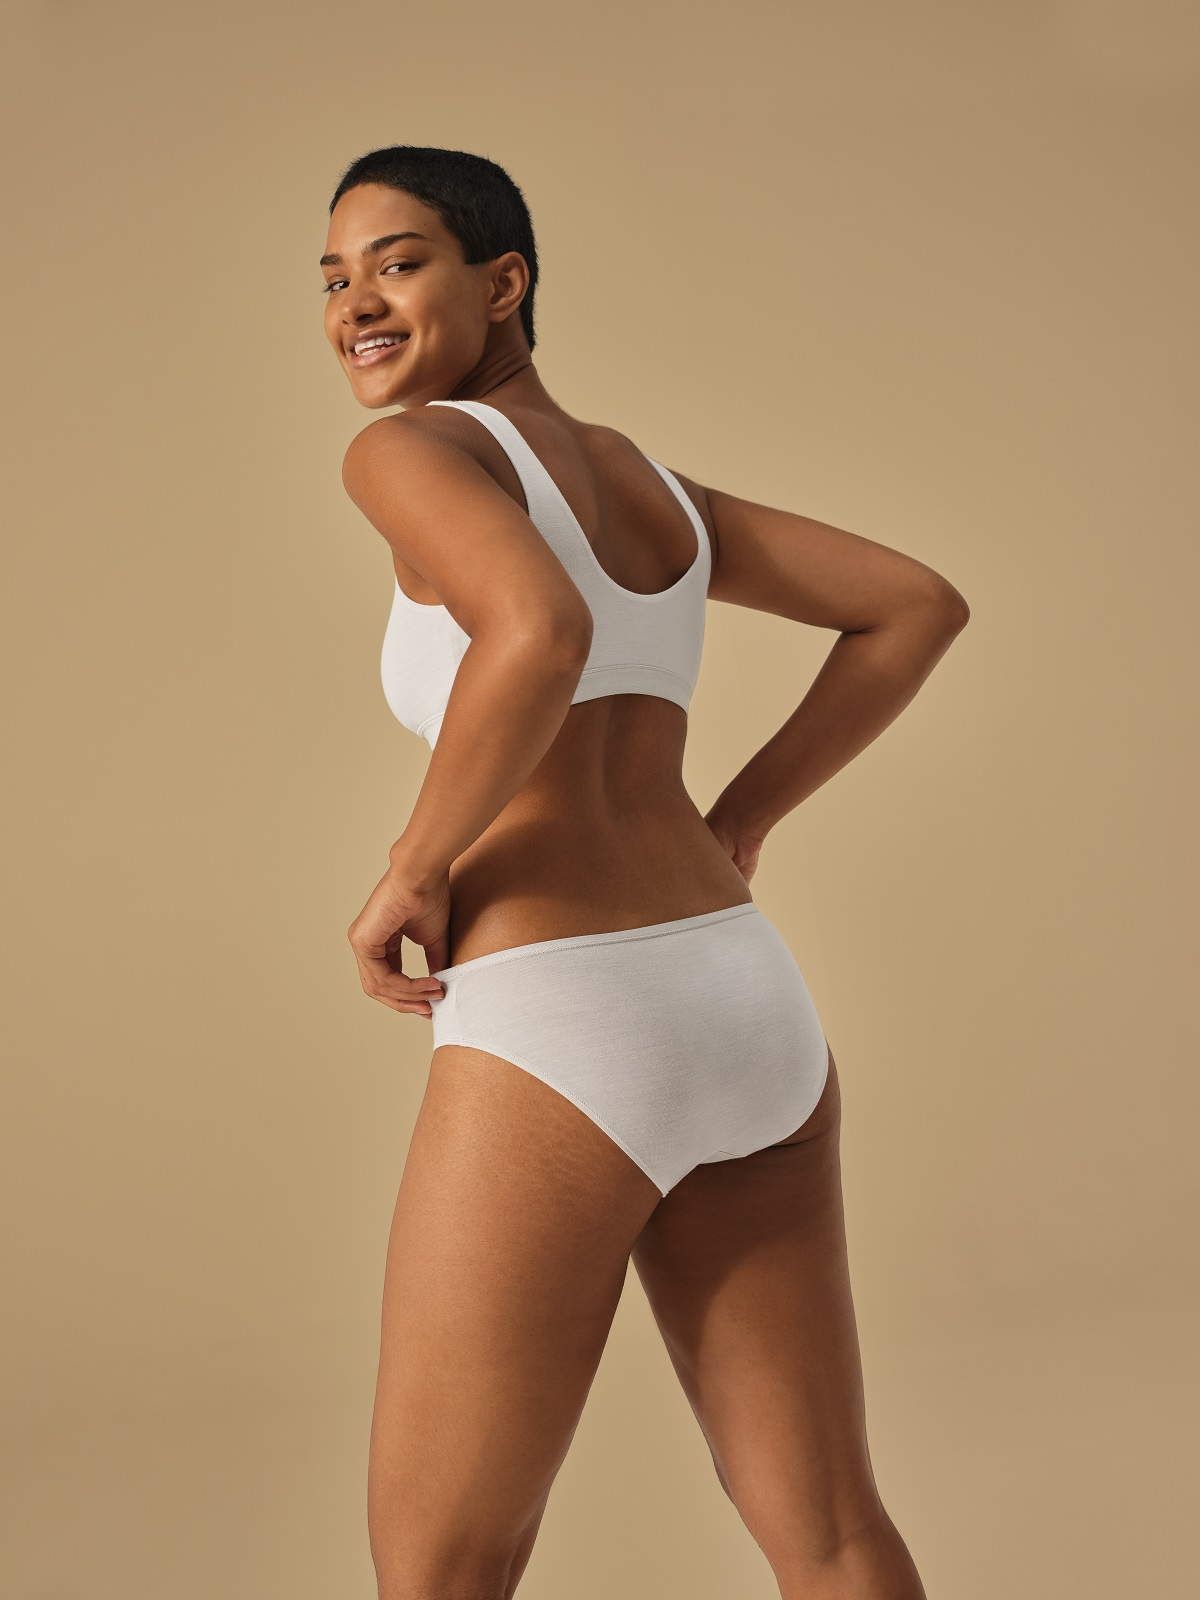 Allbirds launched last week a sustainable undergarments line made from a blend of New Zealand-sourced merino wool and eucalyptus tree fiber.